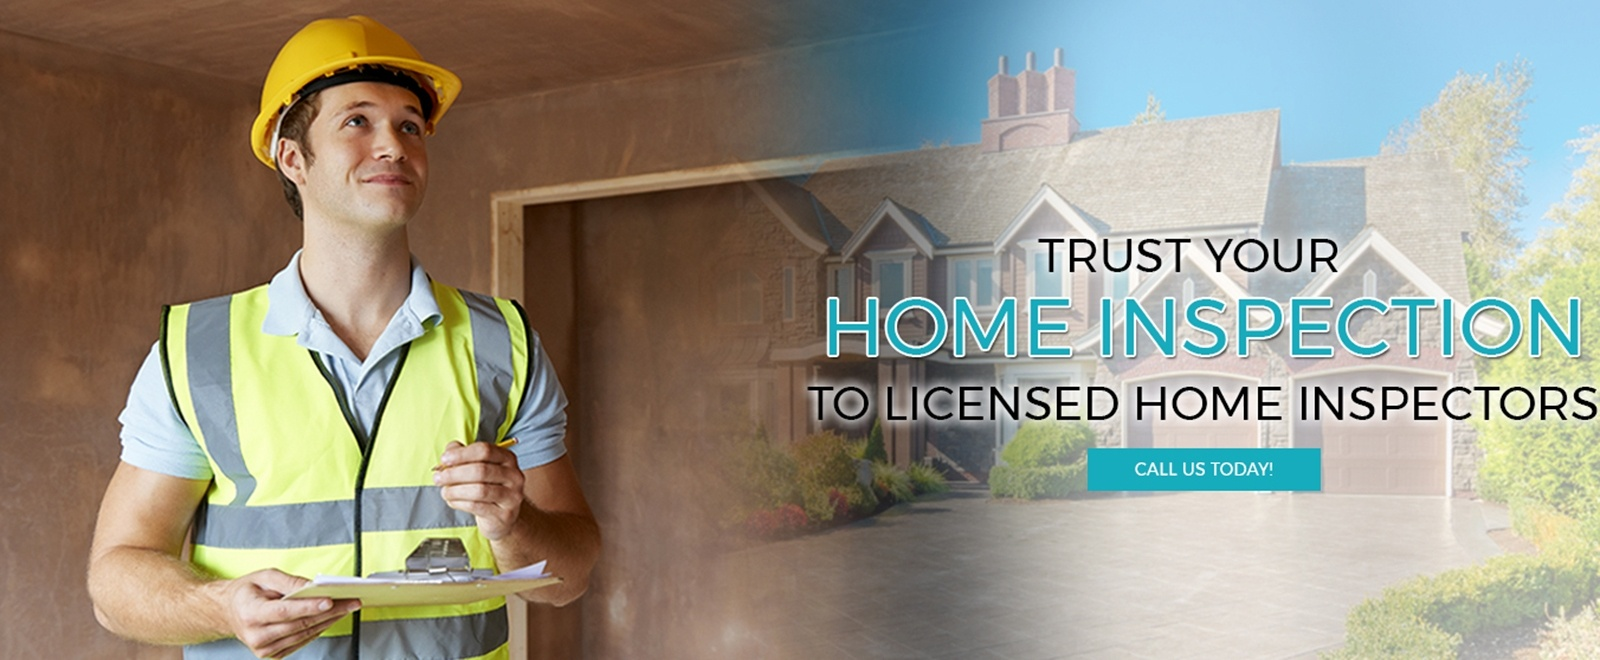 Trust Your Home Inspection To Licensed Home Inspectors